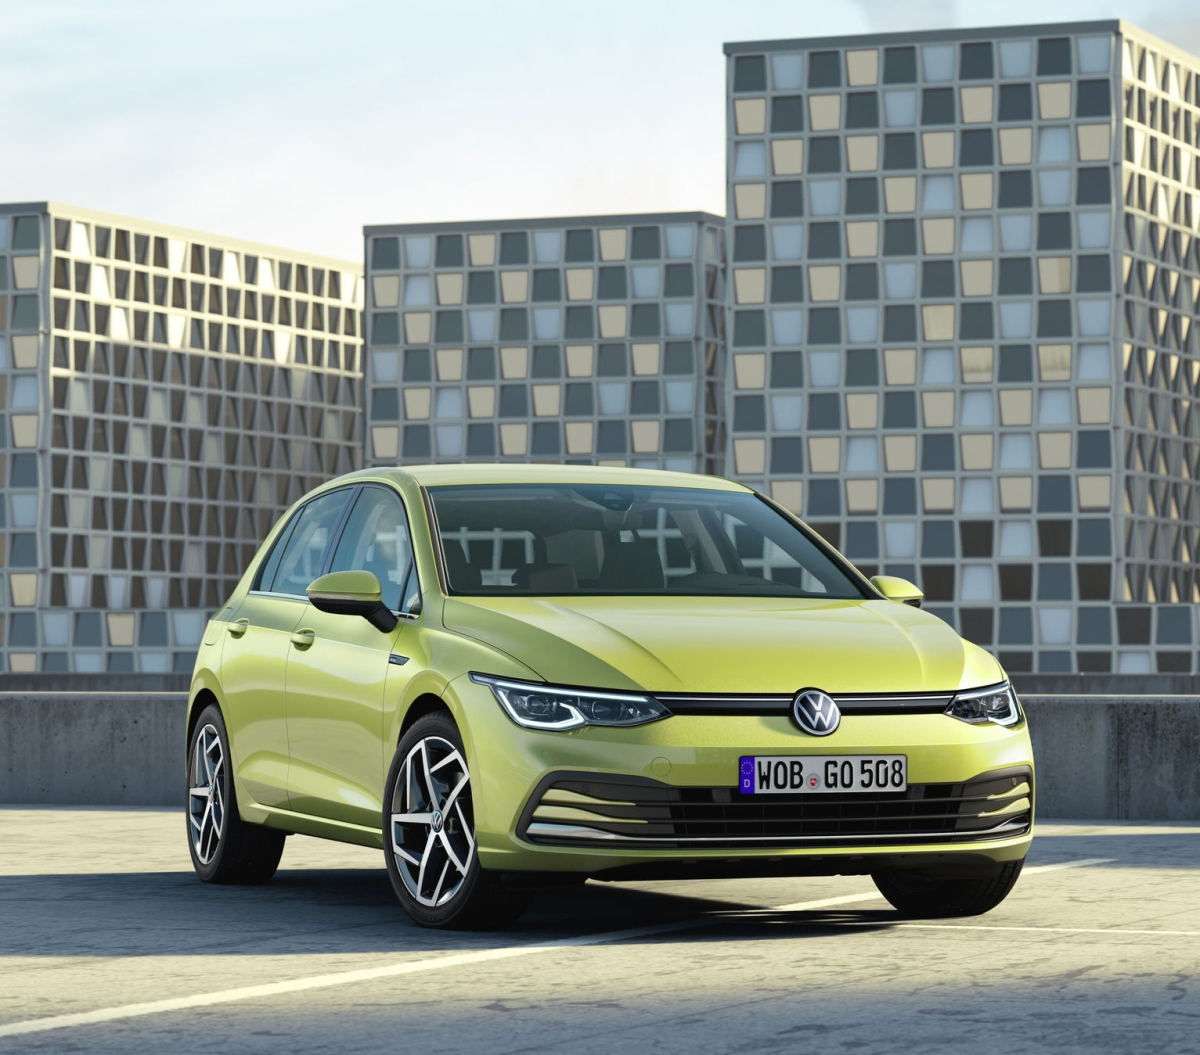 8th generation golf from vw is smart clean yet emotive